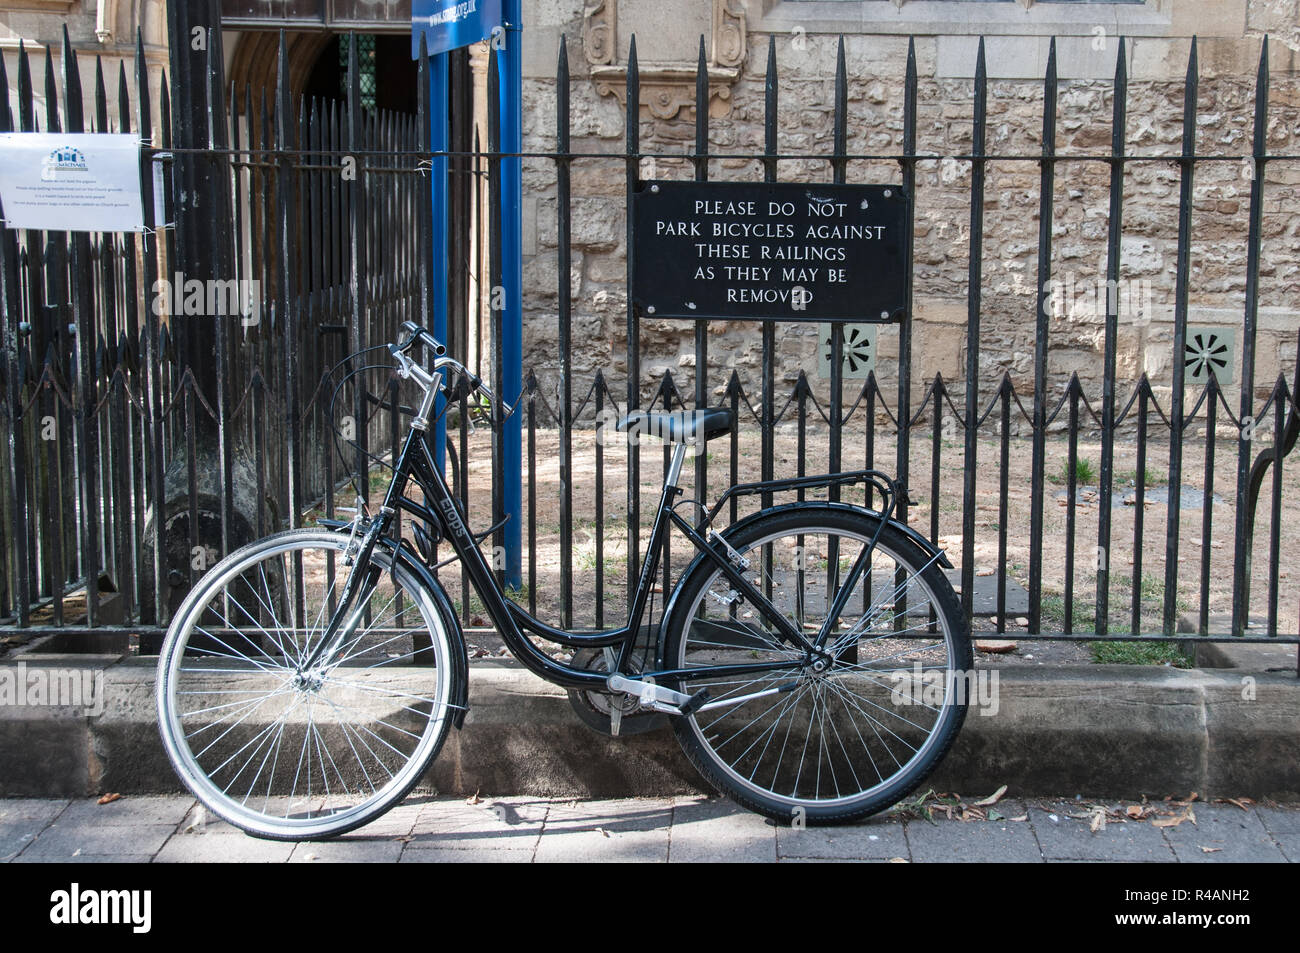 Bicycle leant against 'no parking' sign on railings - Stock Image